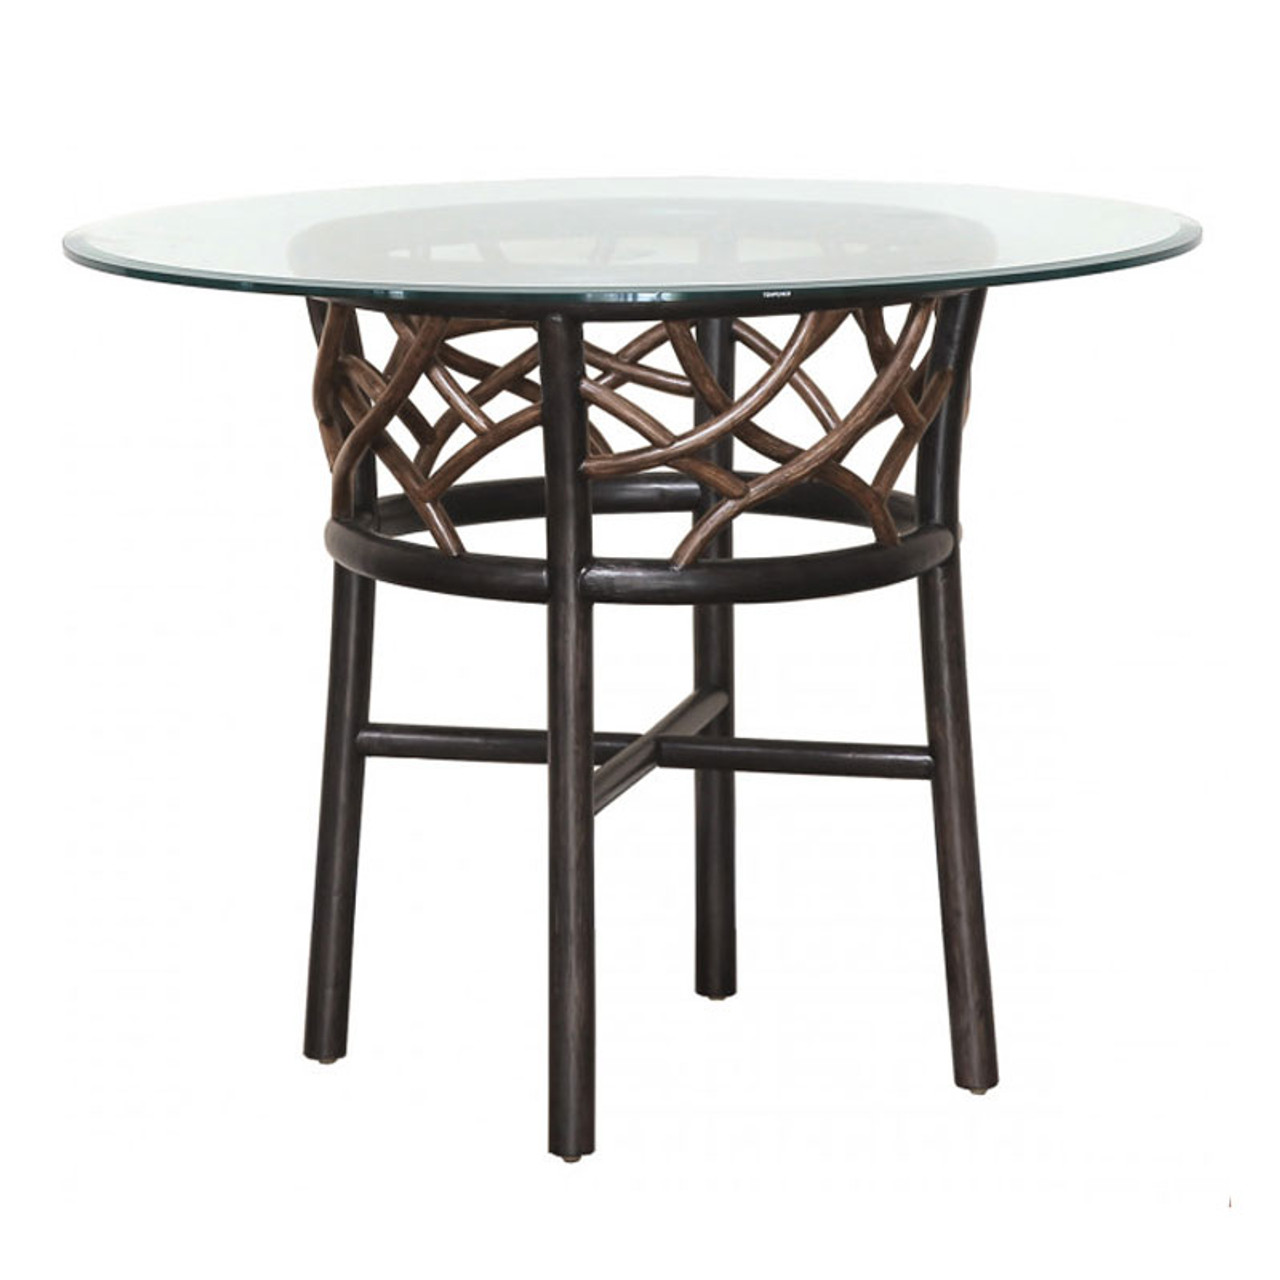 Trinidad Round 42 Dining Table With Glass Top